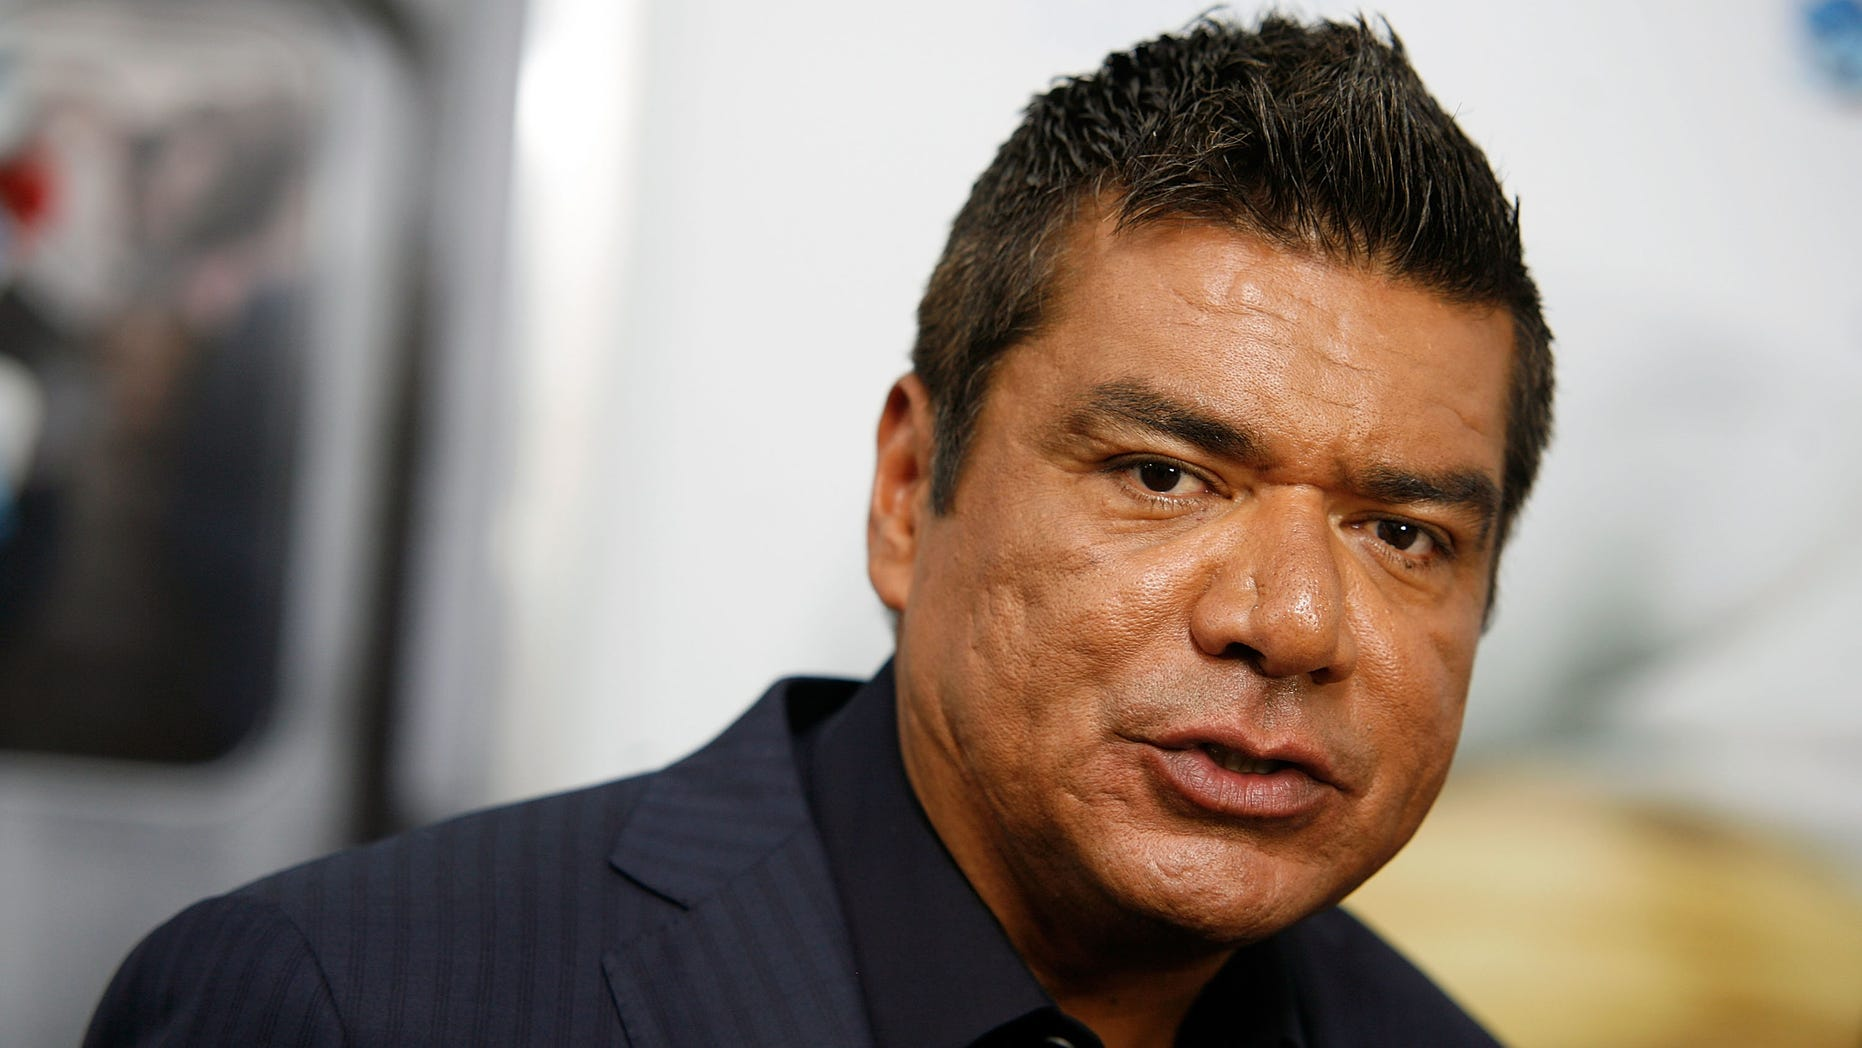 George Lopez brawls with guy at Hooters over Trump 'joke'